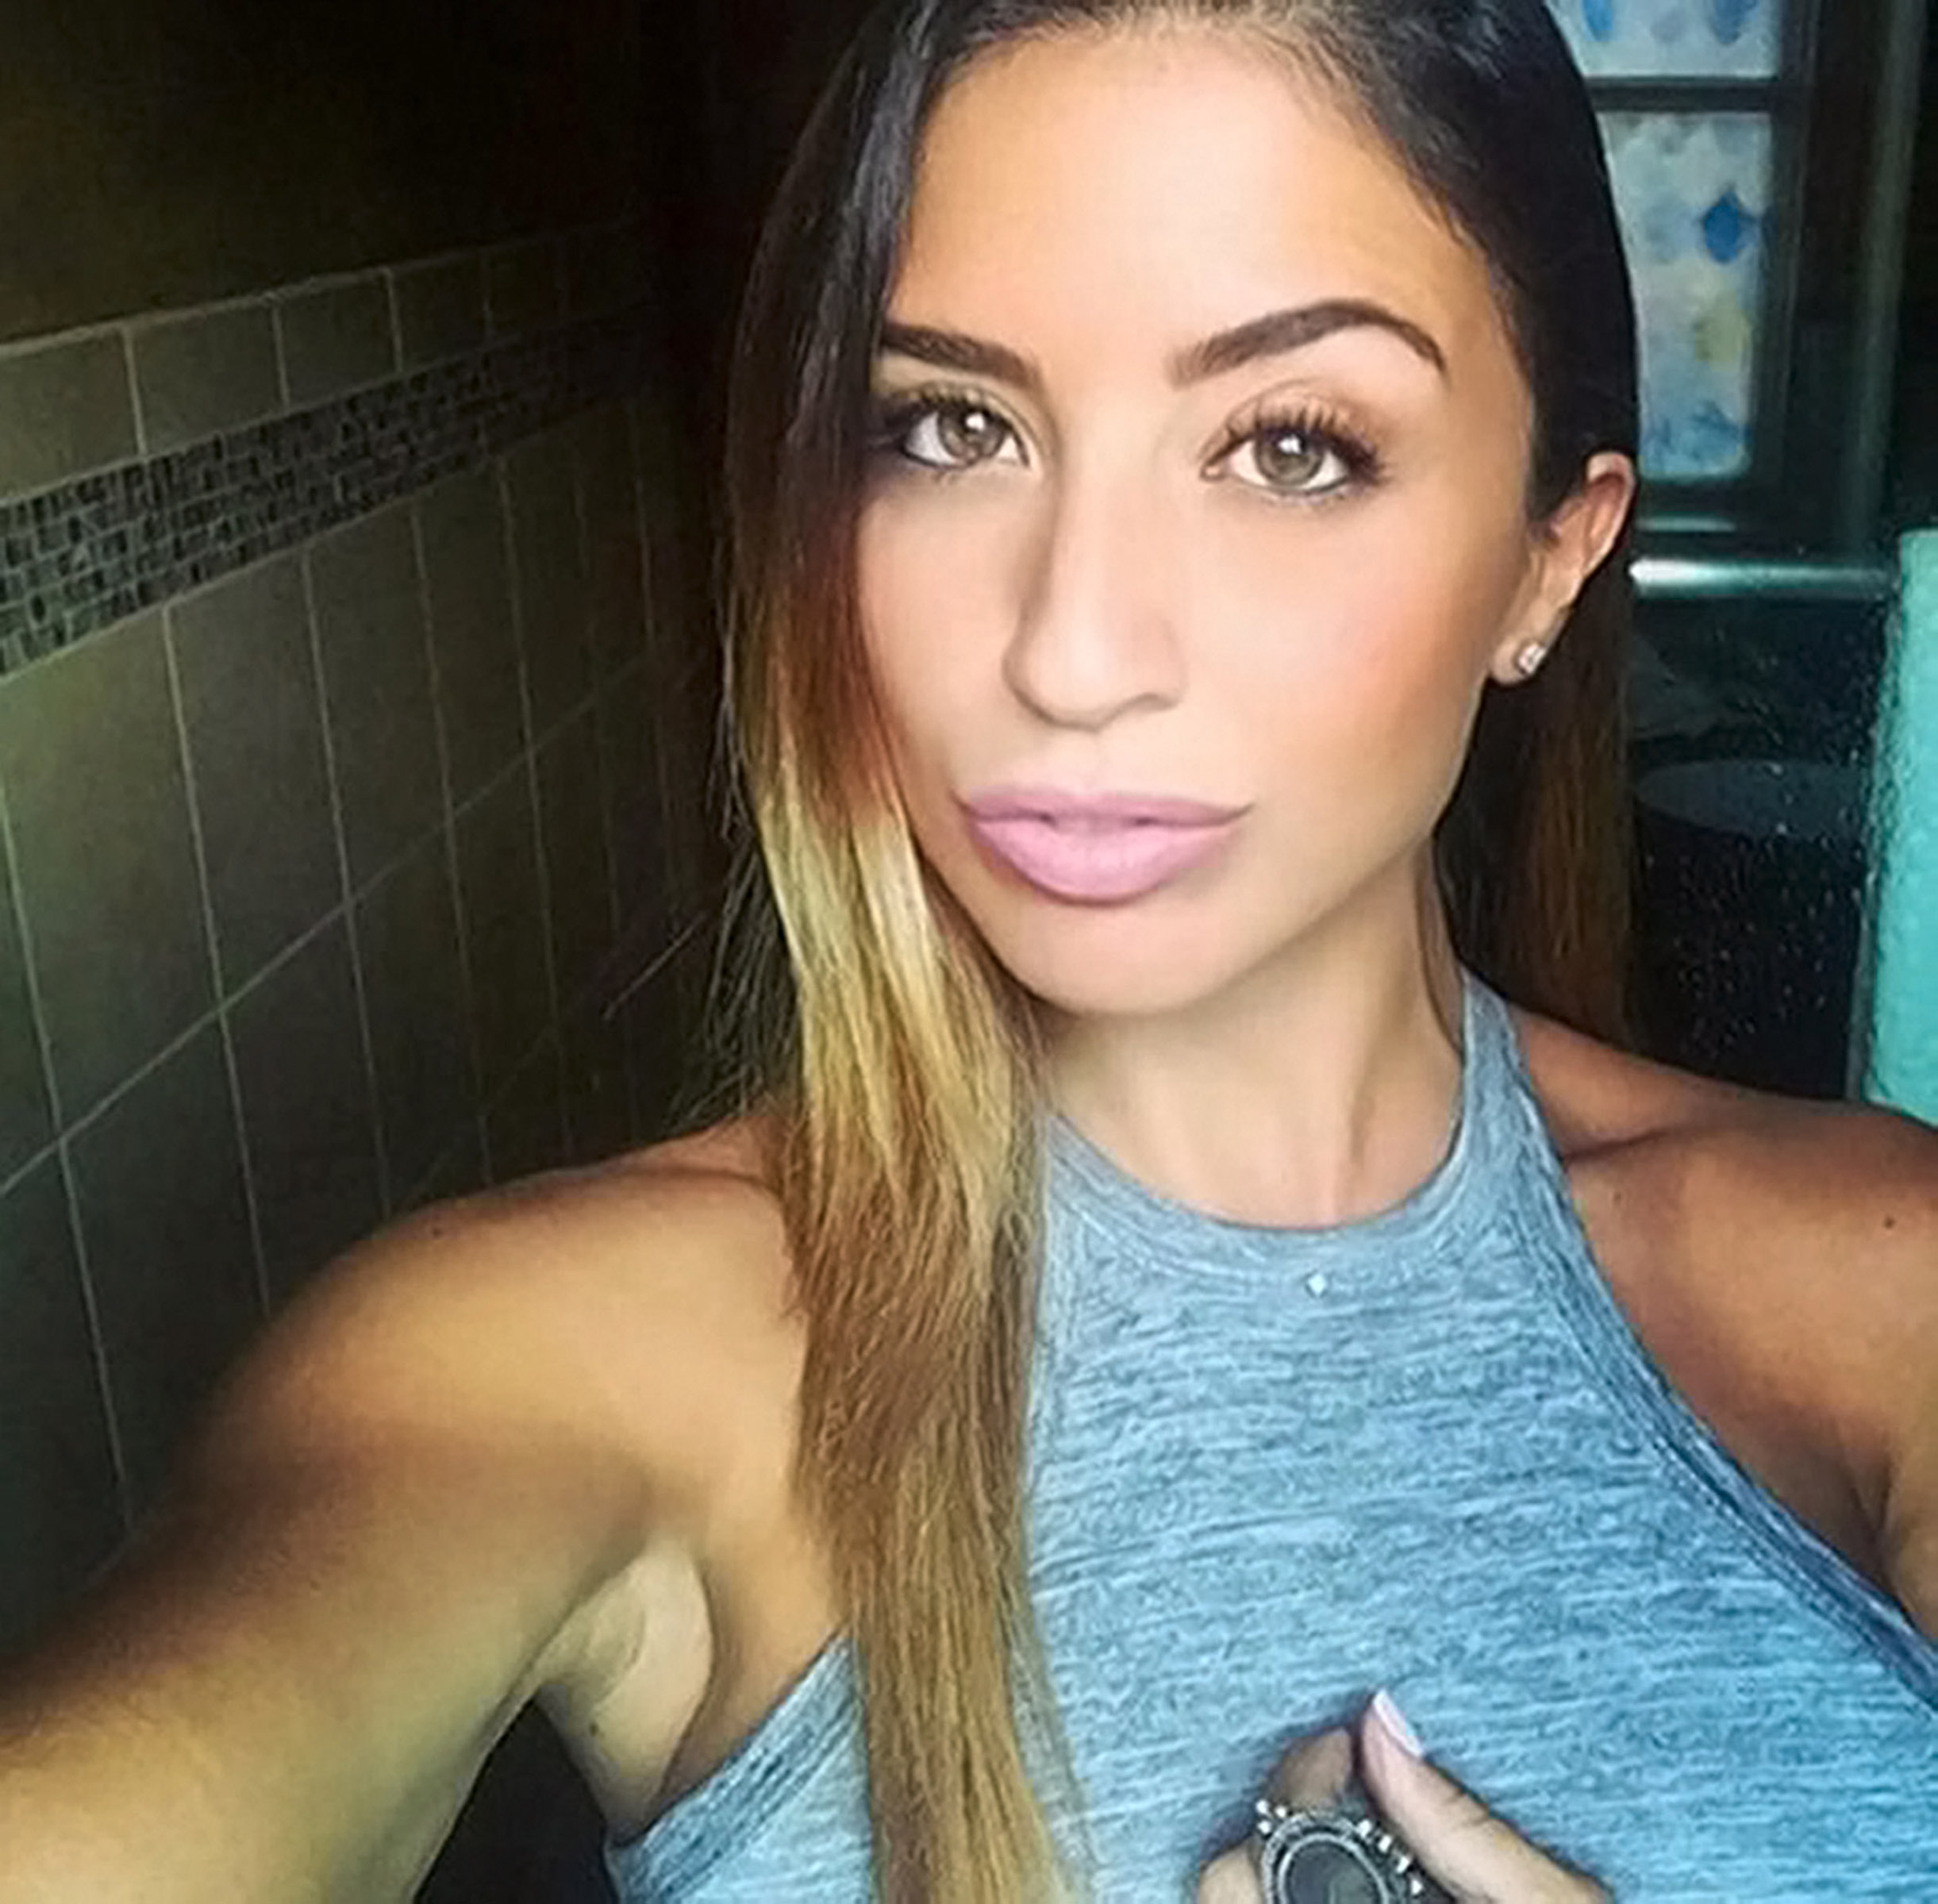 Call girls in queens ny